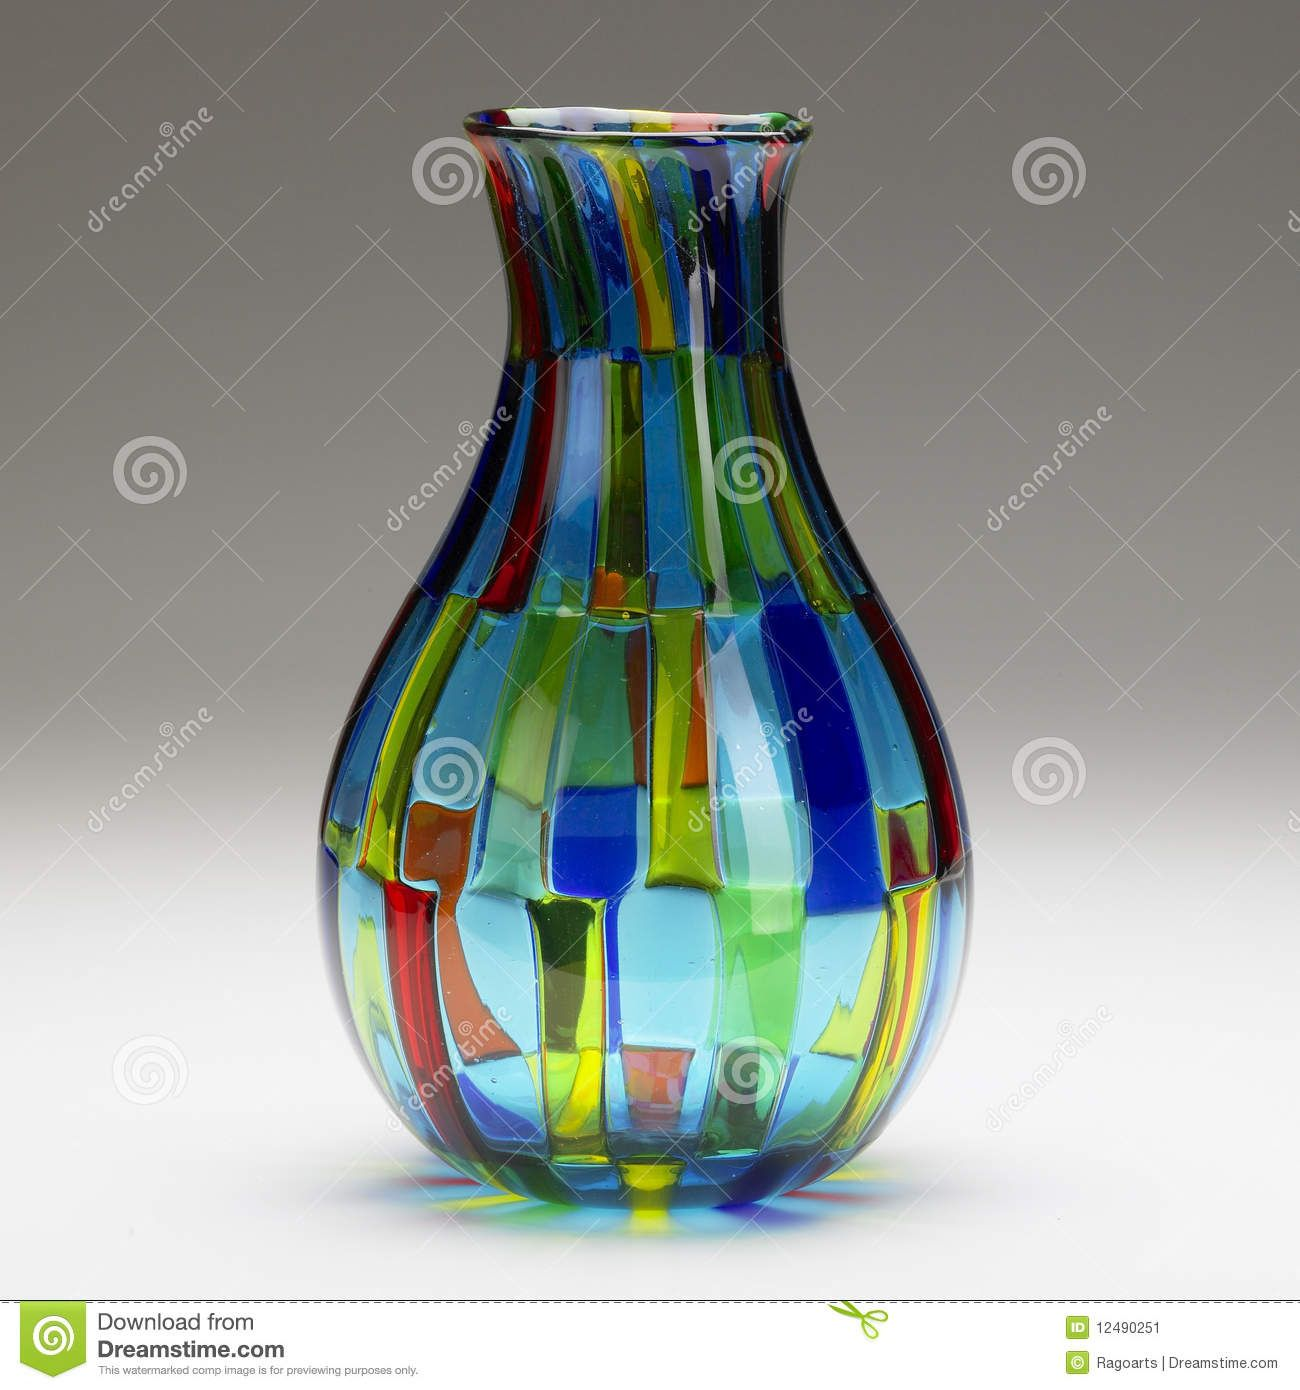 Beautiful glass vase download from over 39 million high quality image detail for rare italian hand blown glass multi colored vase stock photo 44255356 reviewsmspy